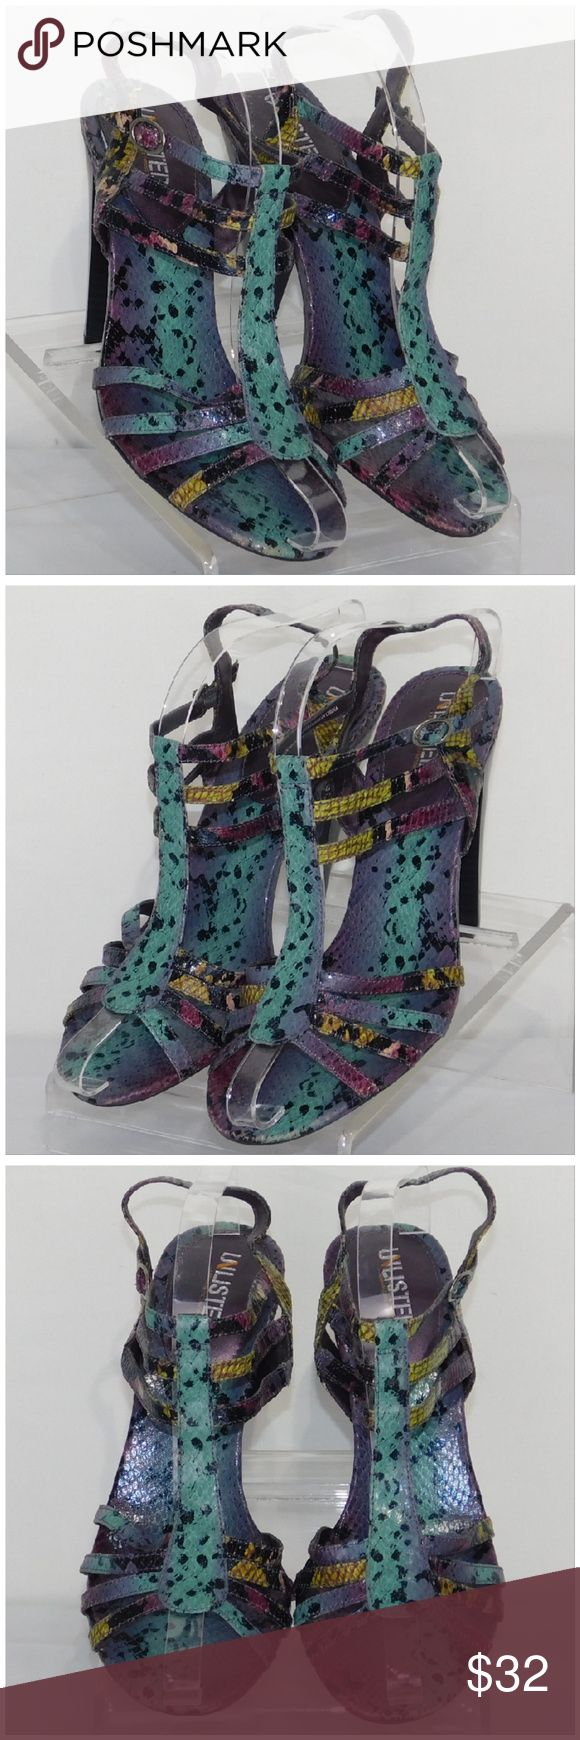 """UNLISTED, 'A KENNETH COLE CO, Strappy Heels, sz 10 UNLISTED, 'A KENNETH COLE CO', Multi-colored Strappy Heels, size 10 M, reptile colorful print, silvertone buckle, man-made materials. Rulers for reference only (blue is 6"""", green is 12""""). Pictures are accurate depiction of condition, please zoom in for close up view of any distress, scratches, scuffs. ADD TO A BUNDLE! 30% Automatically Discounted on all Bundles! Unlisted by Kenneth Cole Shoes Heels"""